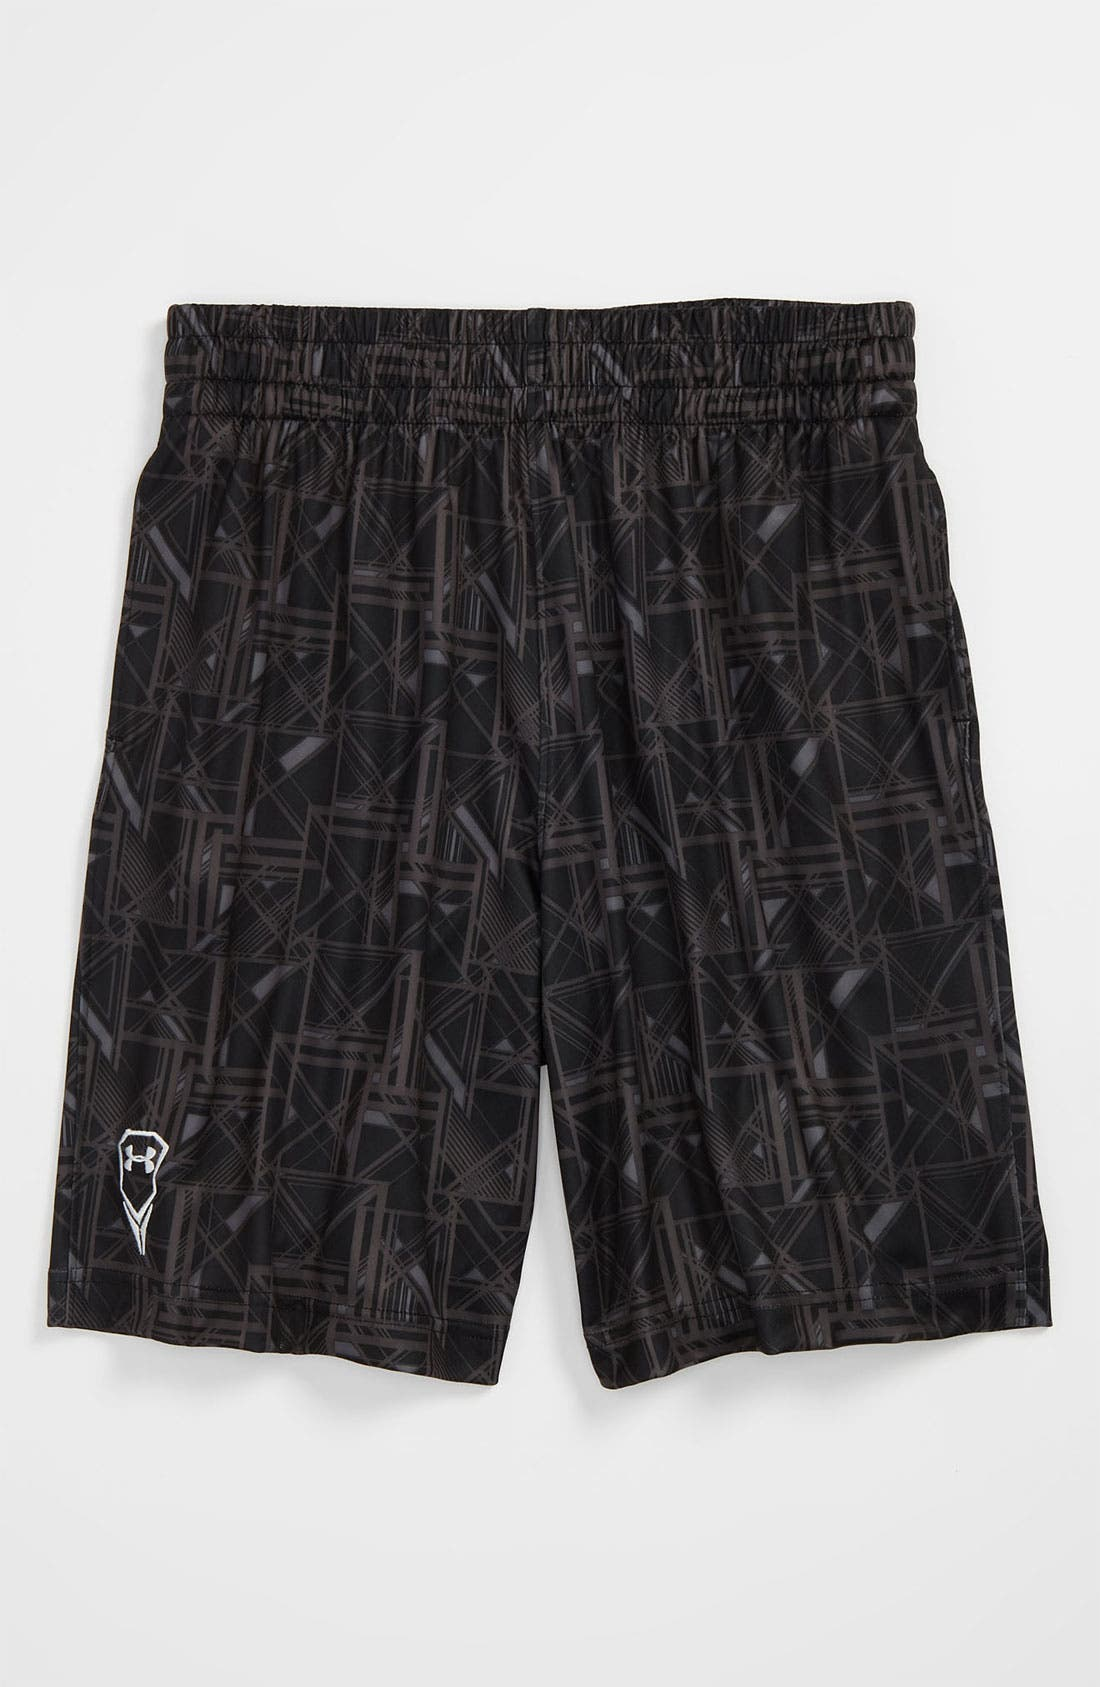 Main Image - Under Armour 'Howie Dewdat' Shorts (Big Boys)